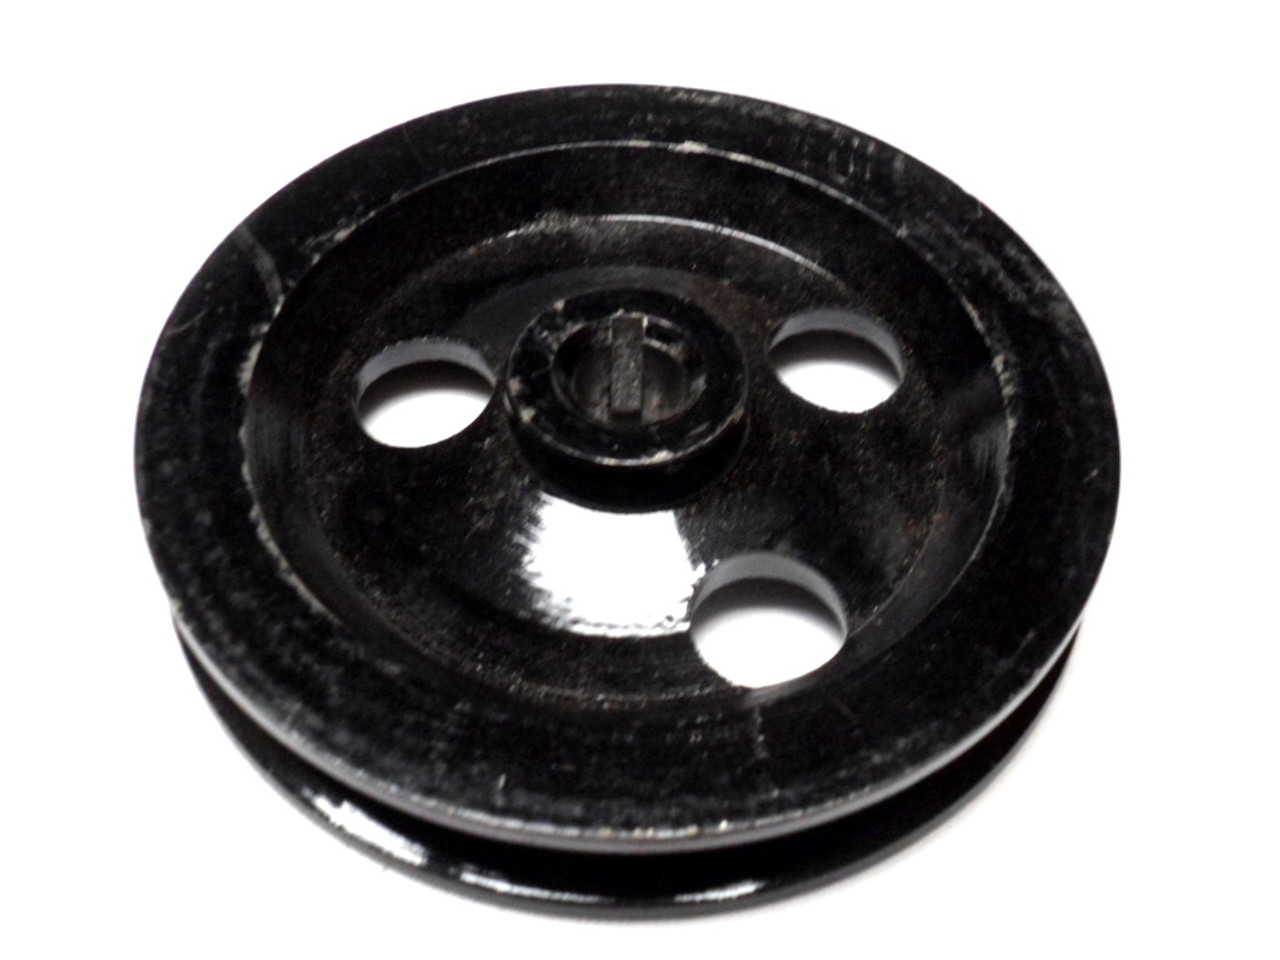 OEM Kinetic 95mm Rear Drive Pulley for Non-Variated Mopeds - TFR